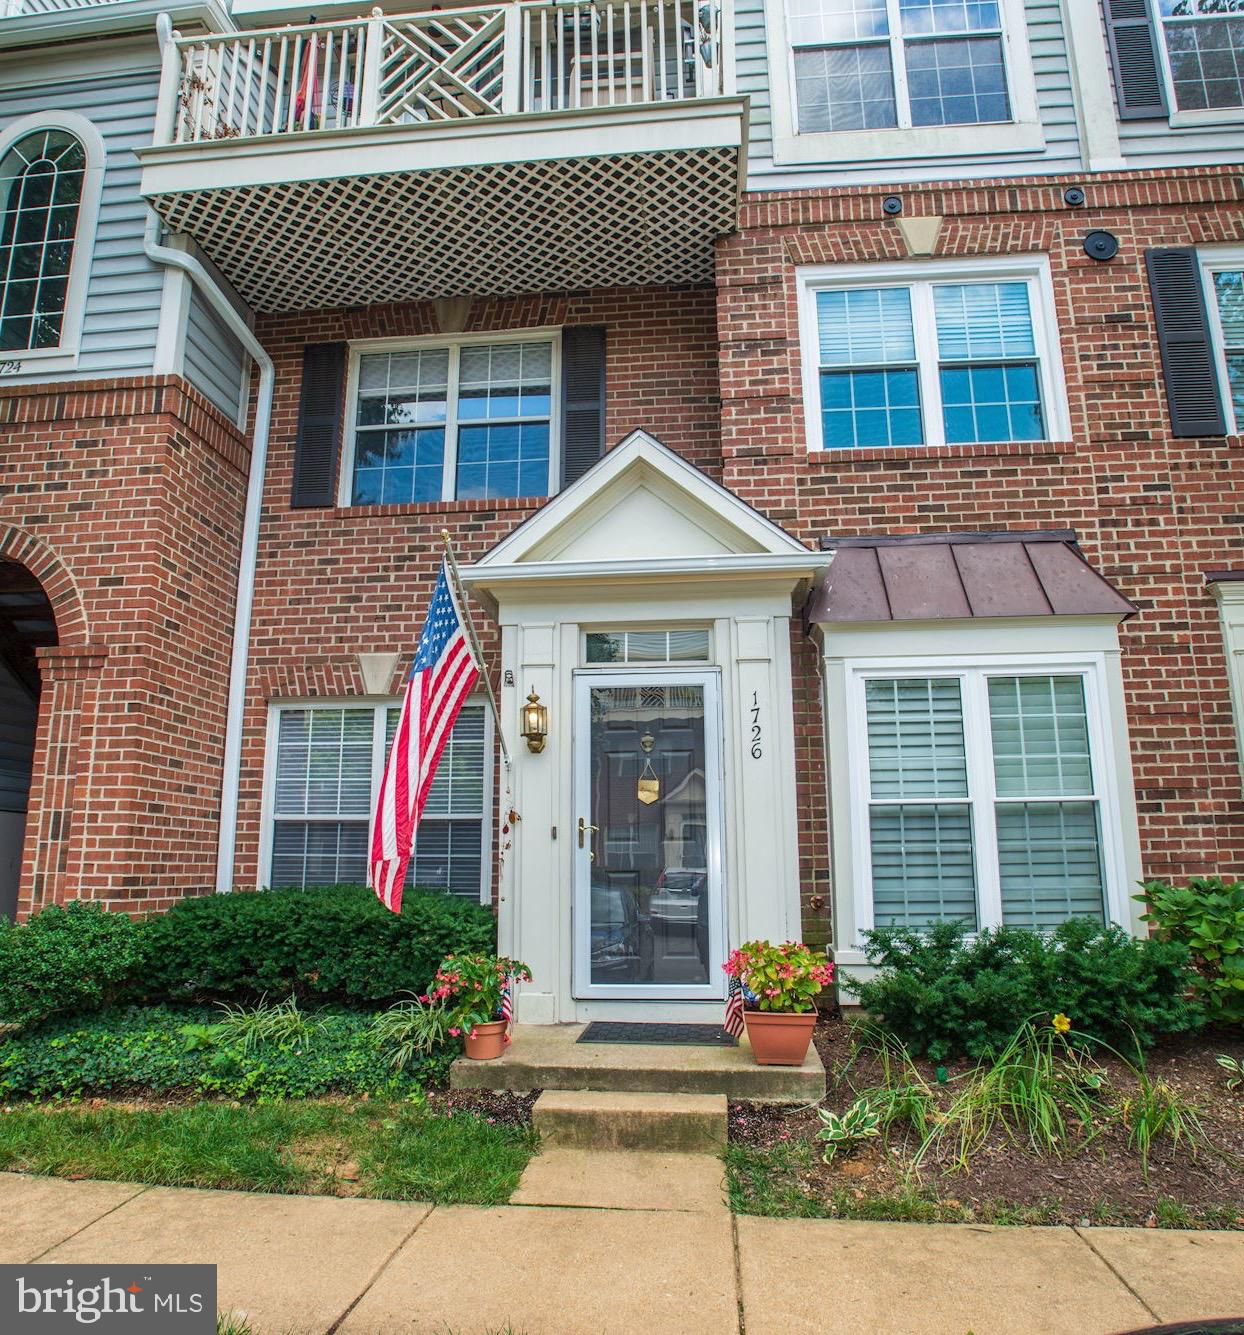 5.3 miles to the new AMAZON HQ2! This END UNIT TOWN HOME is a total 10!  Updated Kitchen and bathrooms include high-end Stainless steel appliances, Gas cooking, new lighting.  OPEN floor plan with WOOD floors on main level!  Patio for grilling!  2 master suite on upper level with FULL sized laundry.  so much storage with pantry area and a walk-in closet.  Tons of visitor parking and 1 assigned space directly in front.  LOCATION, location, location just minutes to AMAZON HQ2, Shirlington Village, Old Town, Alexandria and Washington DC.  Shopping, restaurants and an abundance of activities just outside your door!  Pardon the dust while the parking lot is being repaved! This is a RELOCATION sale, please call/email Agent for information if submitting an offer!